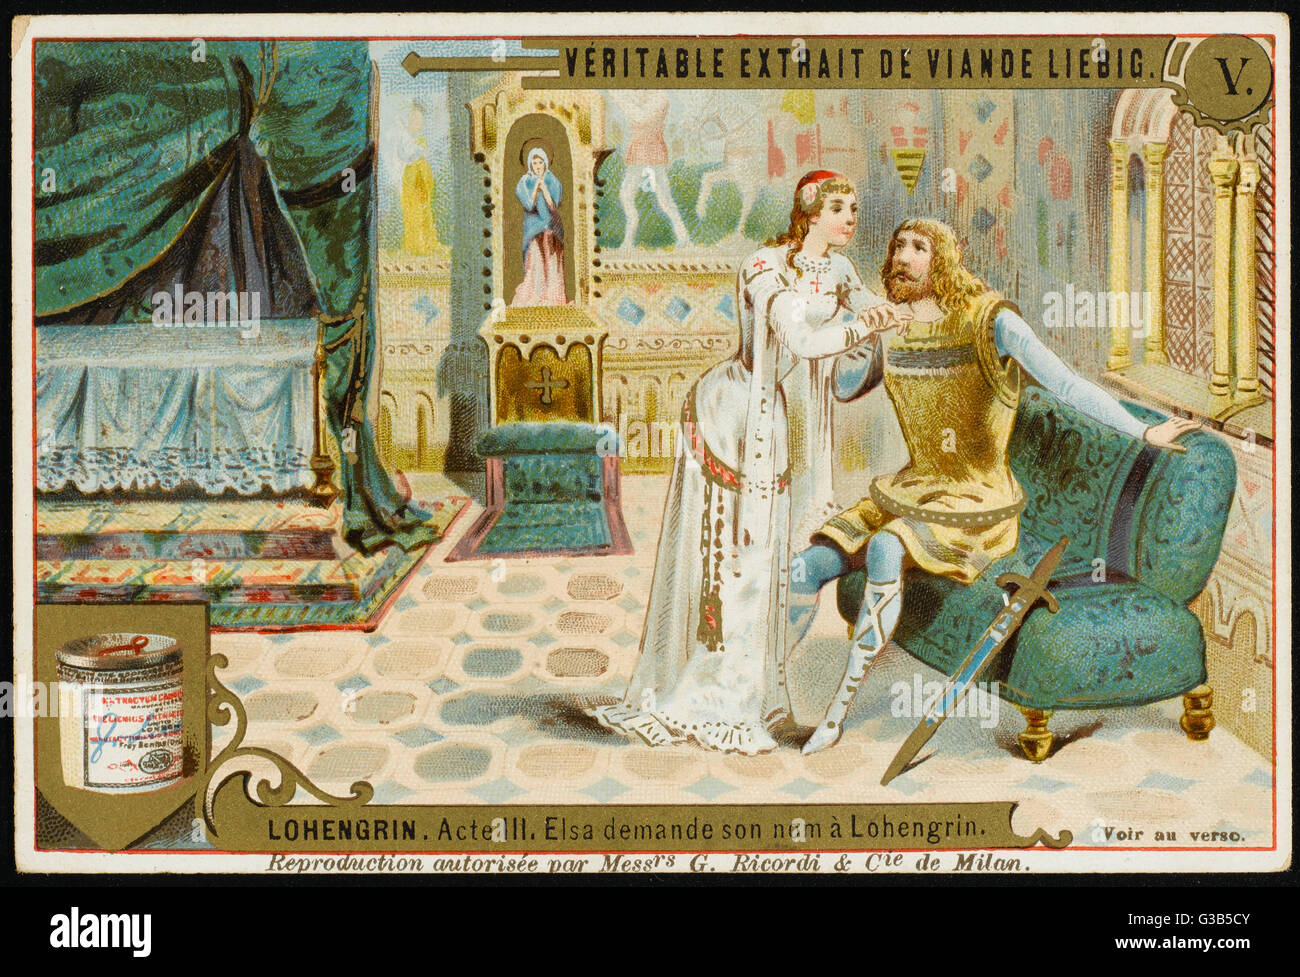 Elsa can't resist asking  Lohengrin what his name is,  with catastrophic consequences  for both of them     - Stock Image